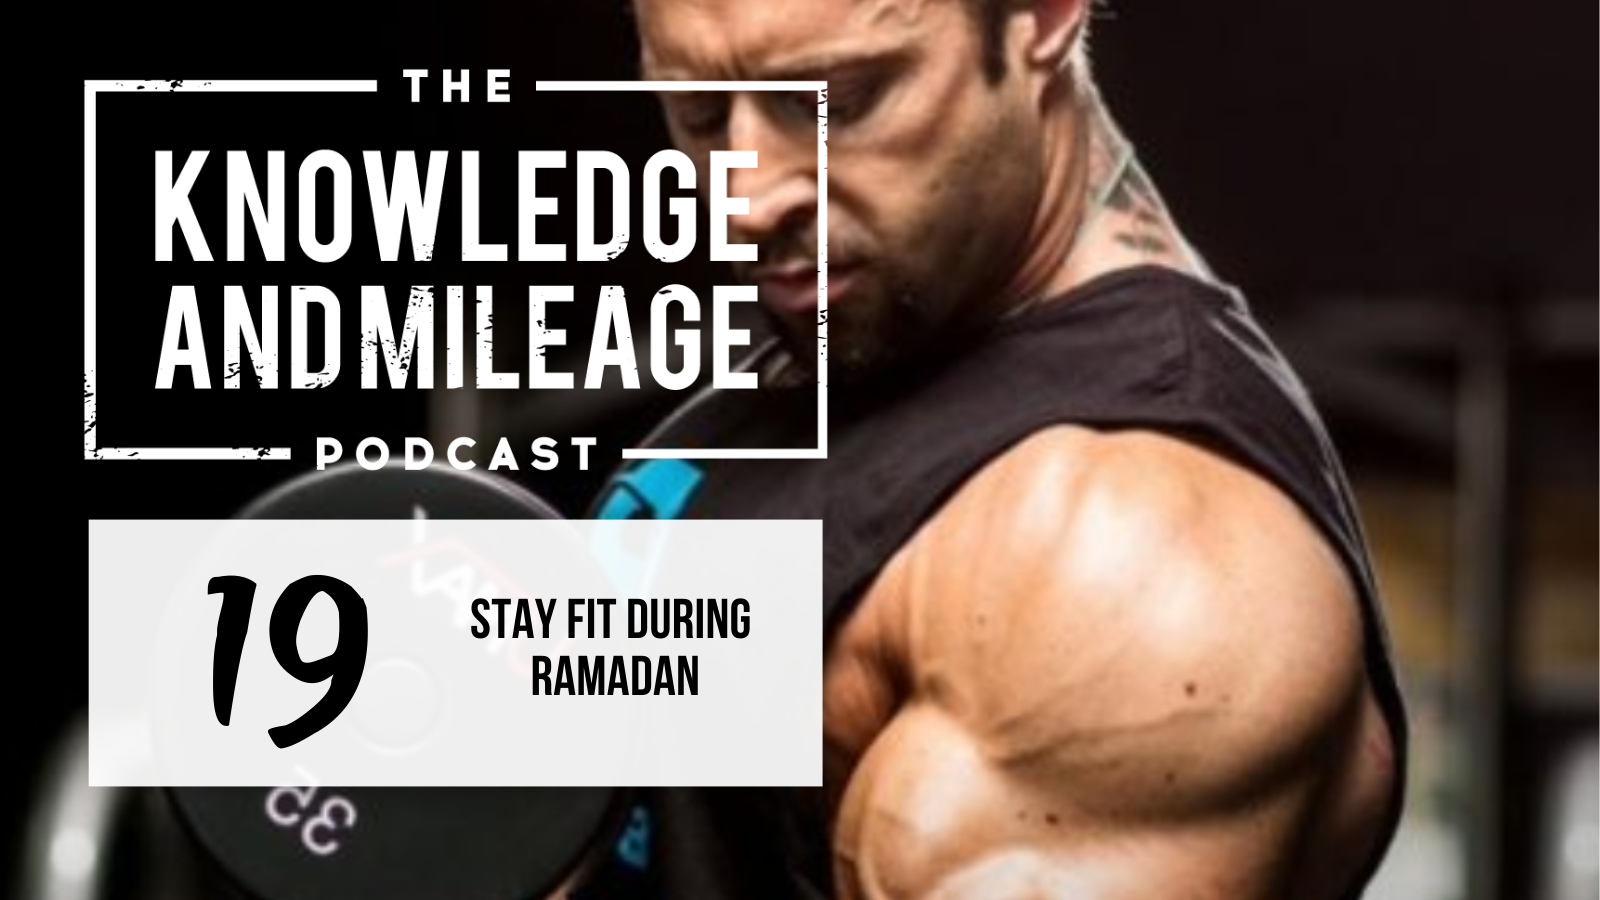 EP 19: Ramadan: Tips on How to Maintain Muscle and Minimize Fat Loss During This Holy Month